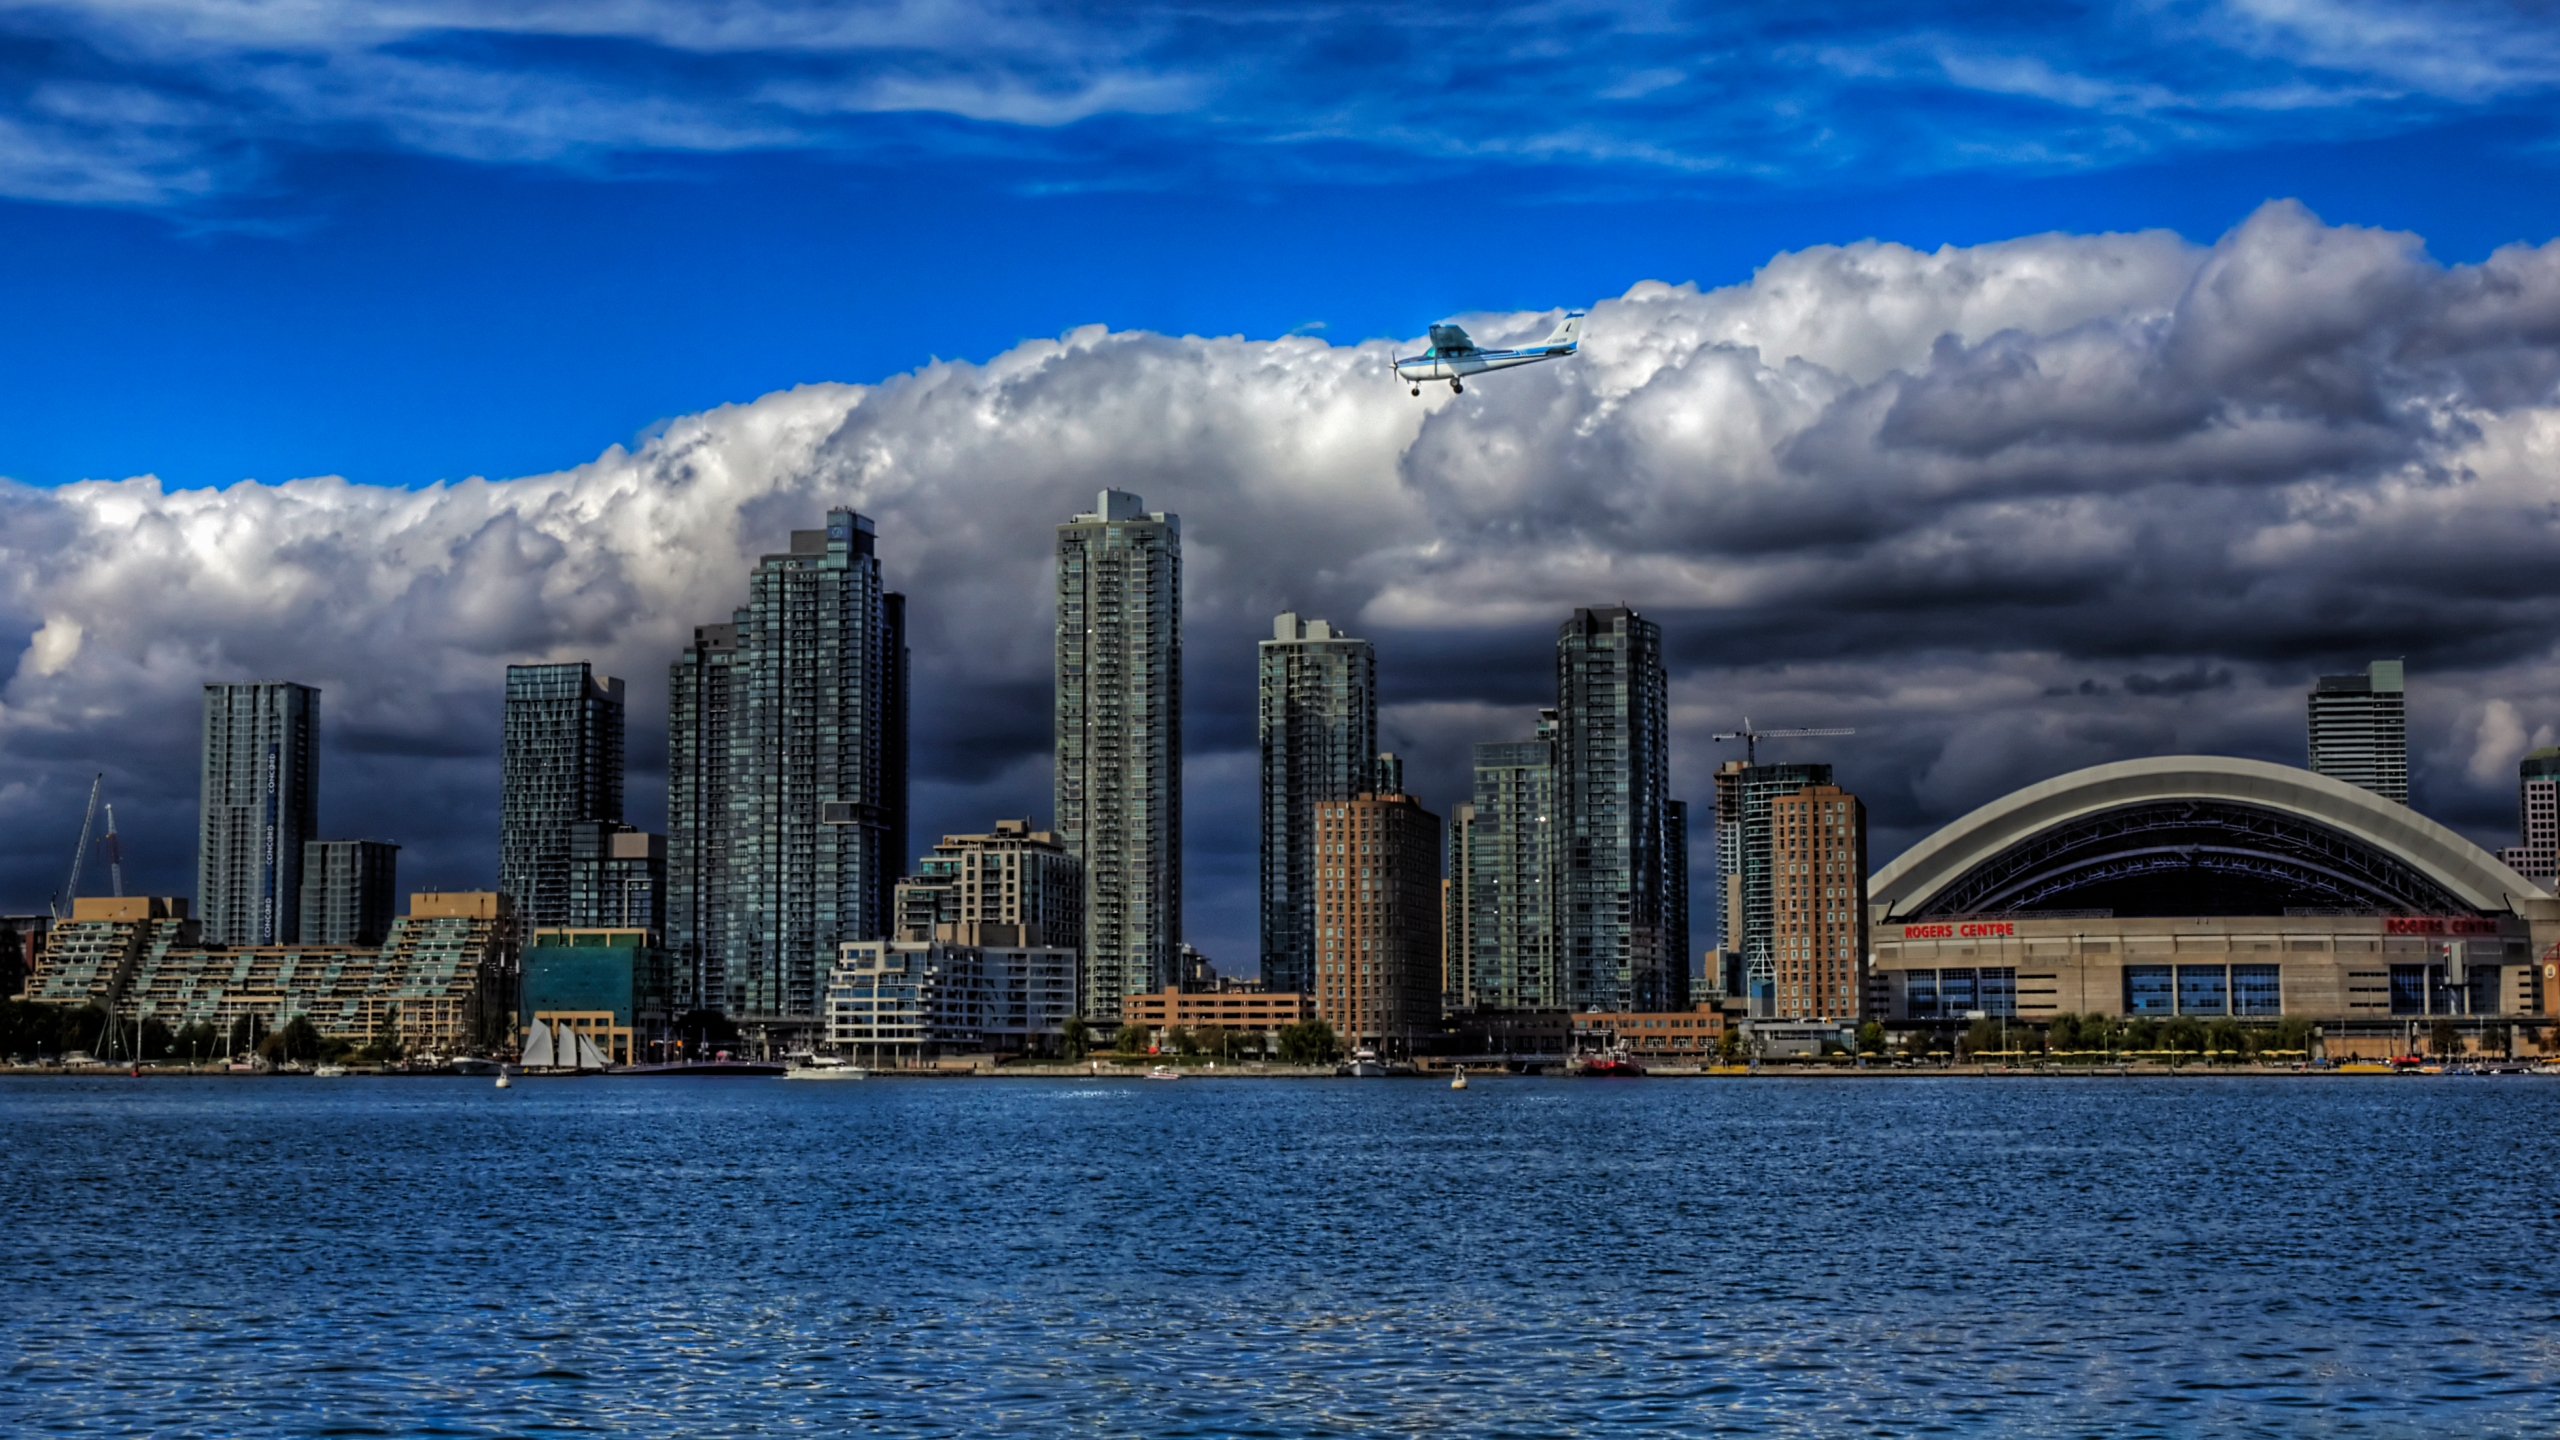 4k Hdr Wallpaper Iphone X Plane Landing On Toronto Island Full Hd Wallpaper And